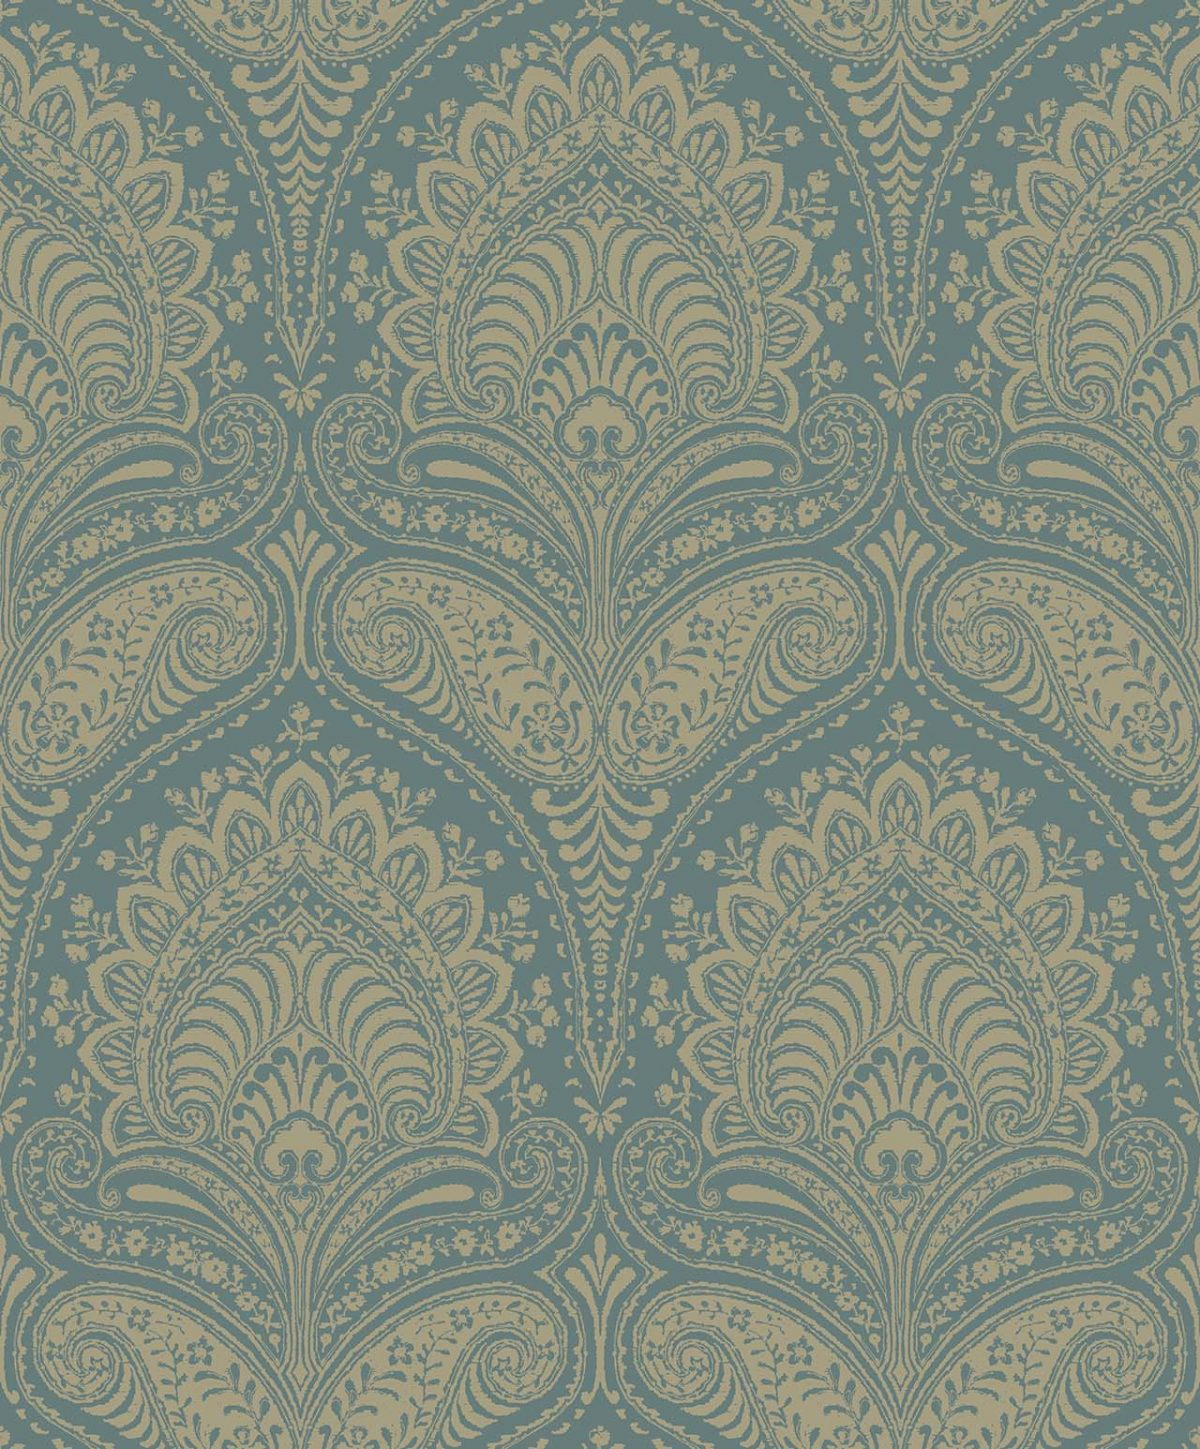 REGAL TEAL A Milan-Wallpaper-CO00116